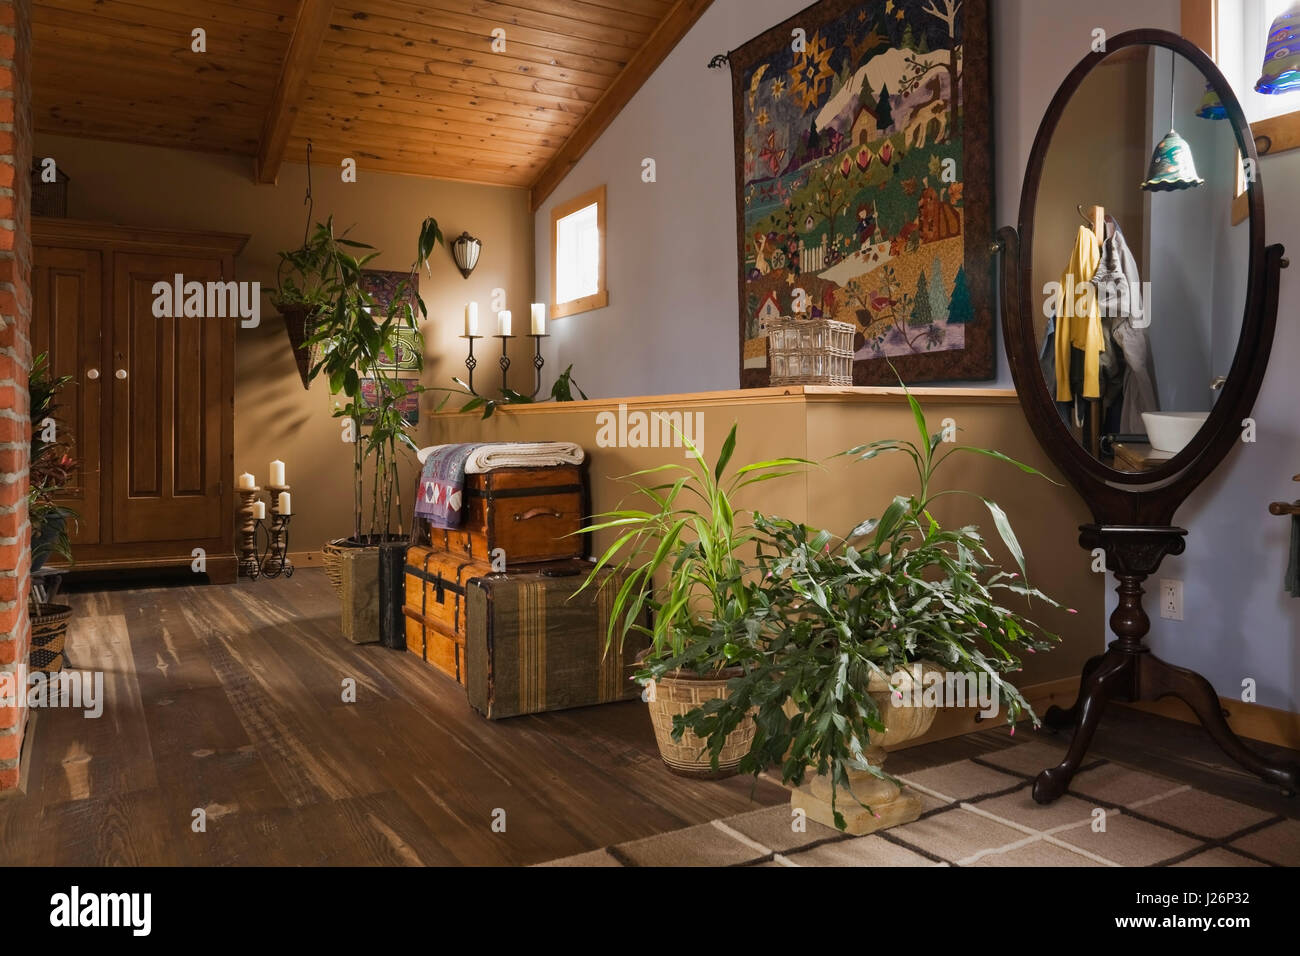 Old Antique Trunk Cases And Mirror In The Master Bedroom Hallway On The Upstairs Floor Inside A Country Cottage Style Residential Home Stock Photo Alamy